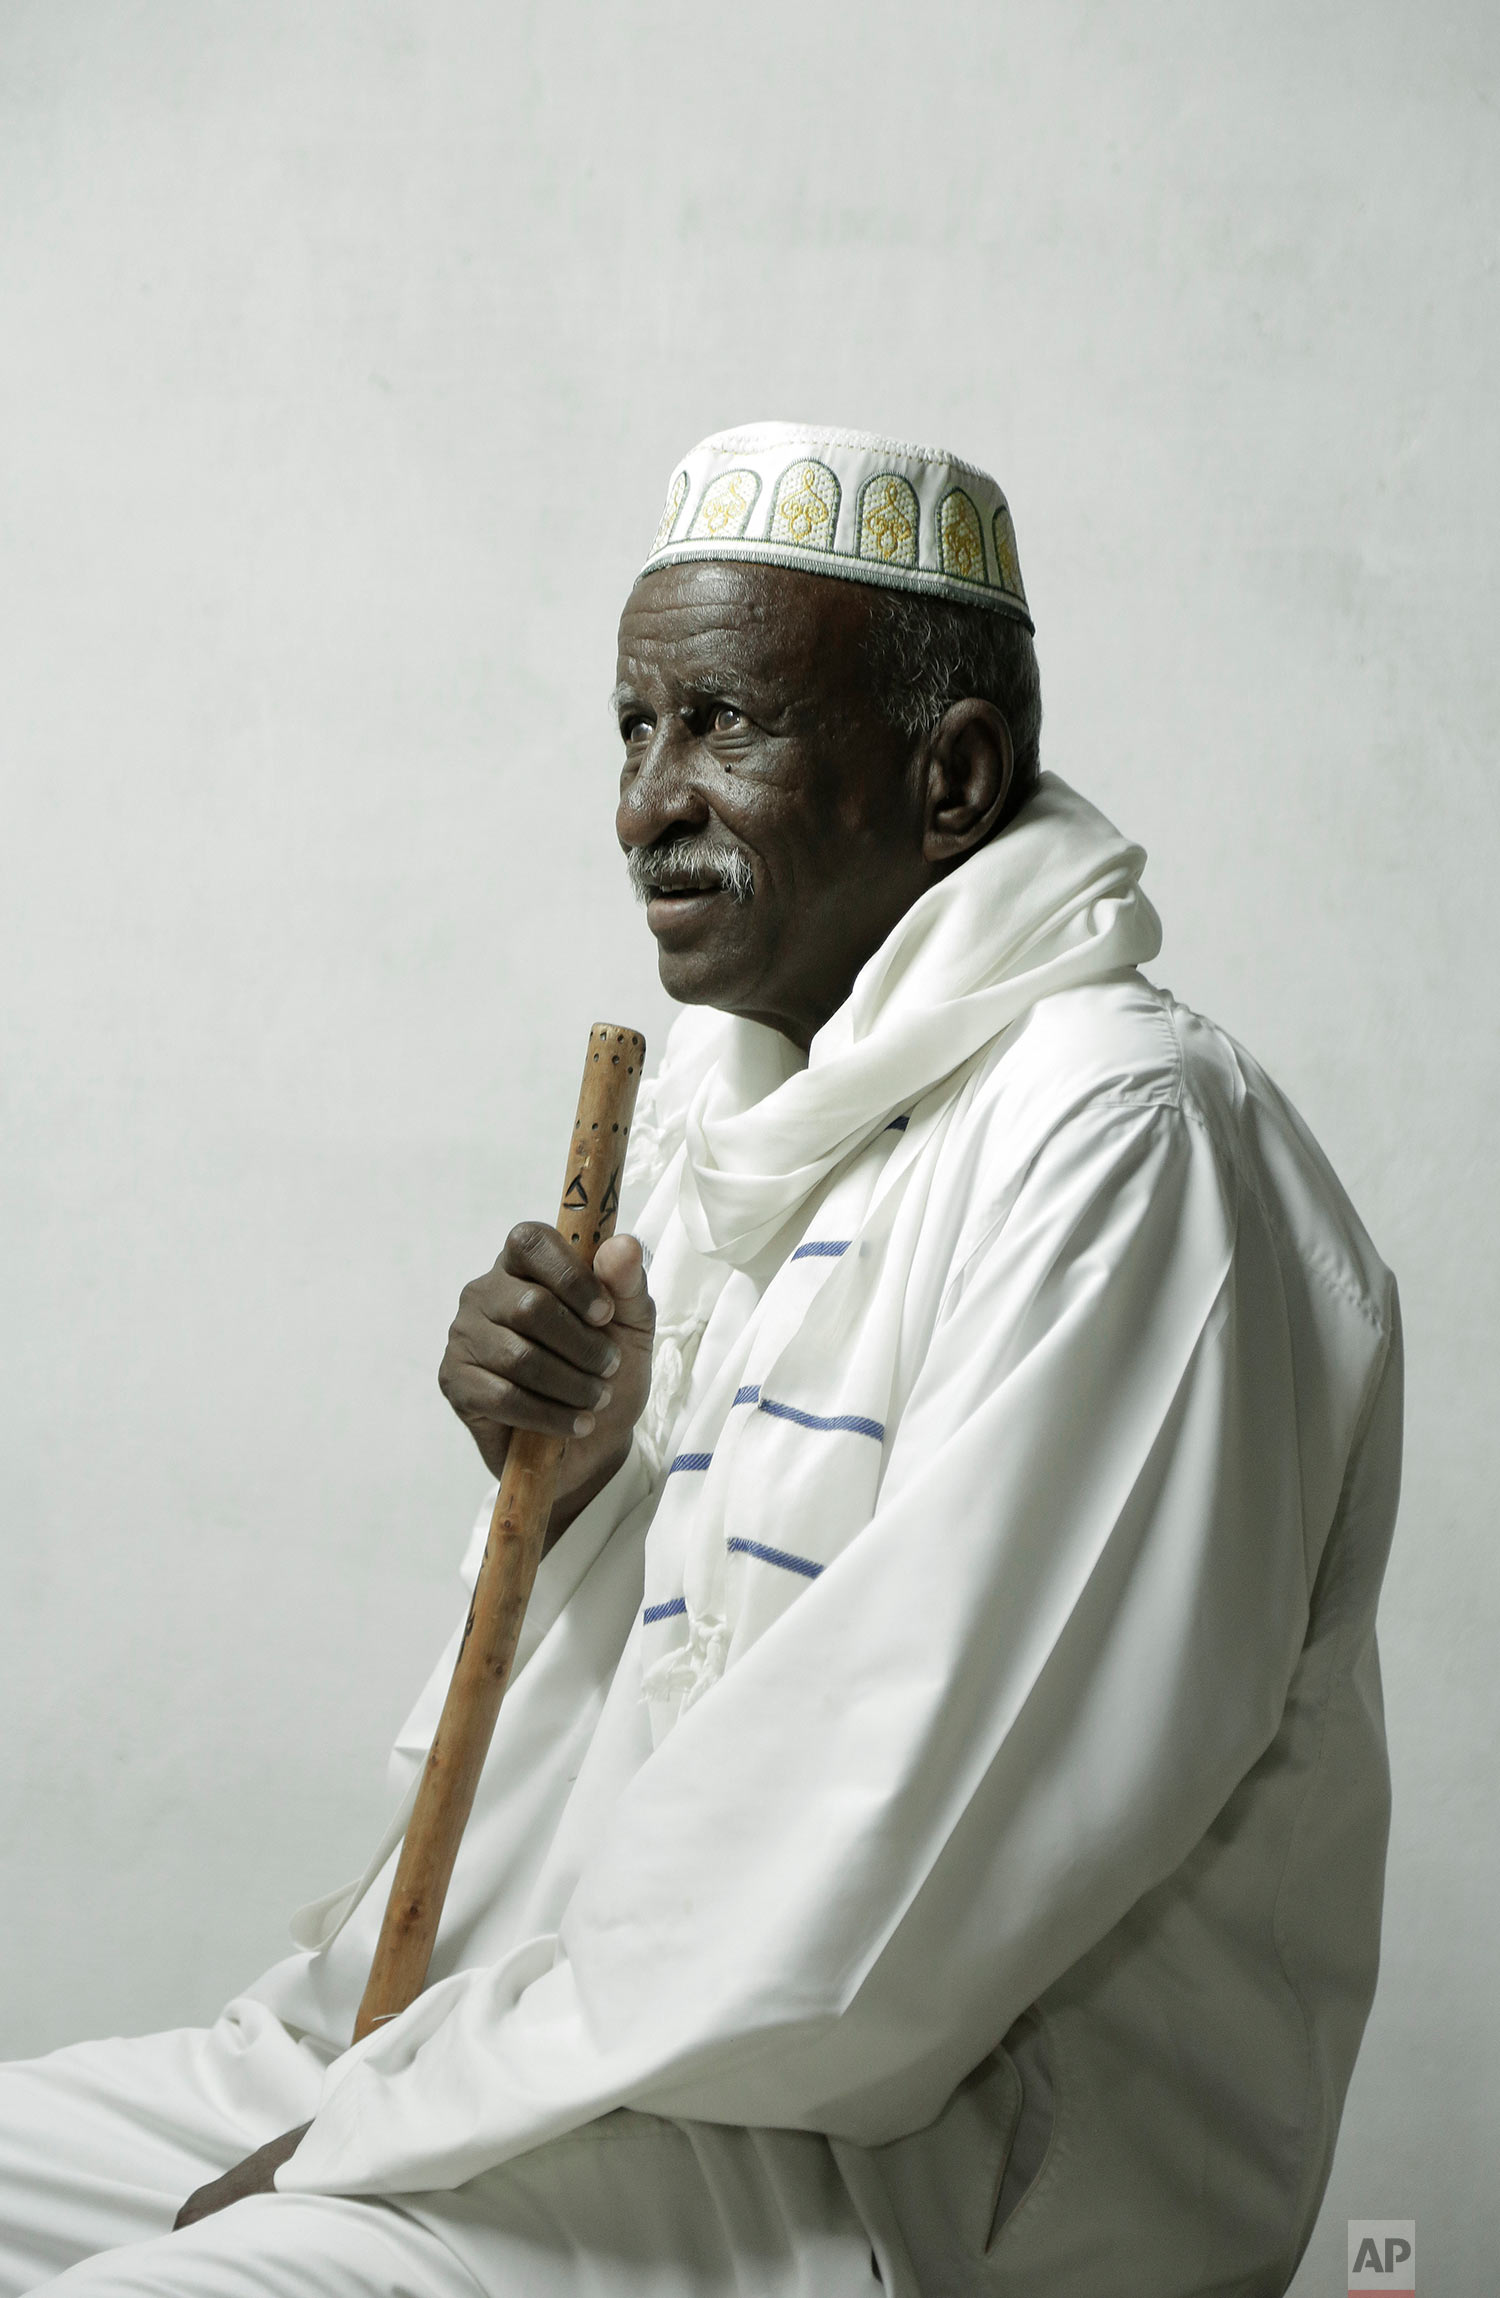 77 year-old Mohammed Youssef poses for a photograph, Aswan, Egypt. (AP Photo/Nariman El-Mofty)